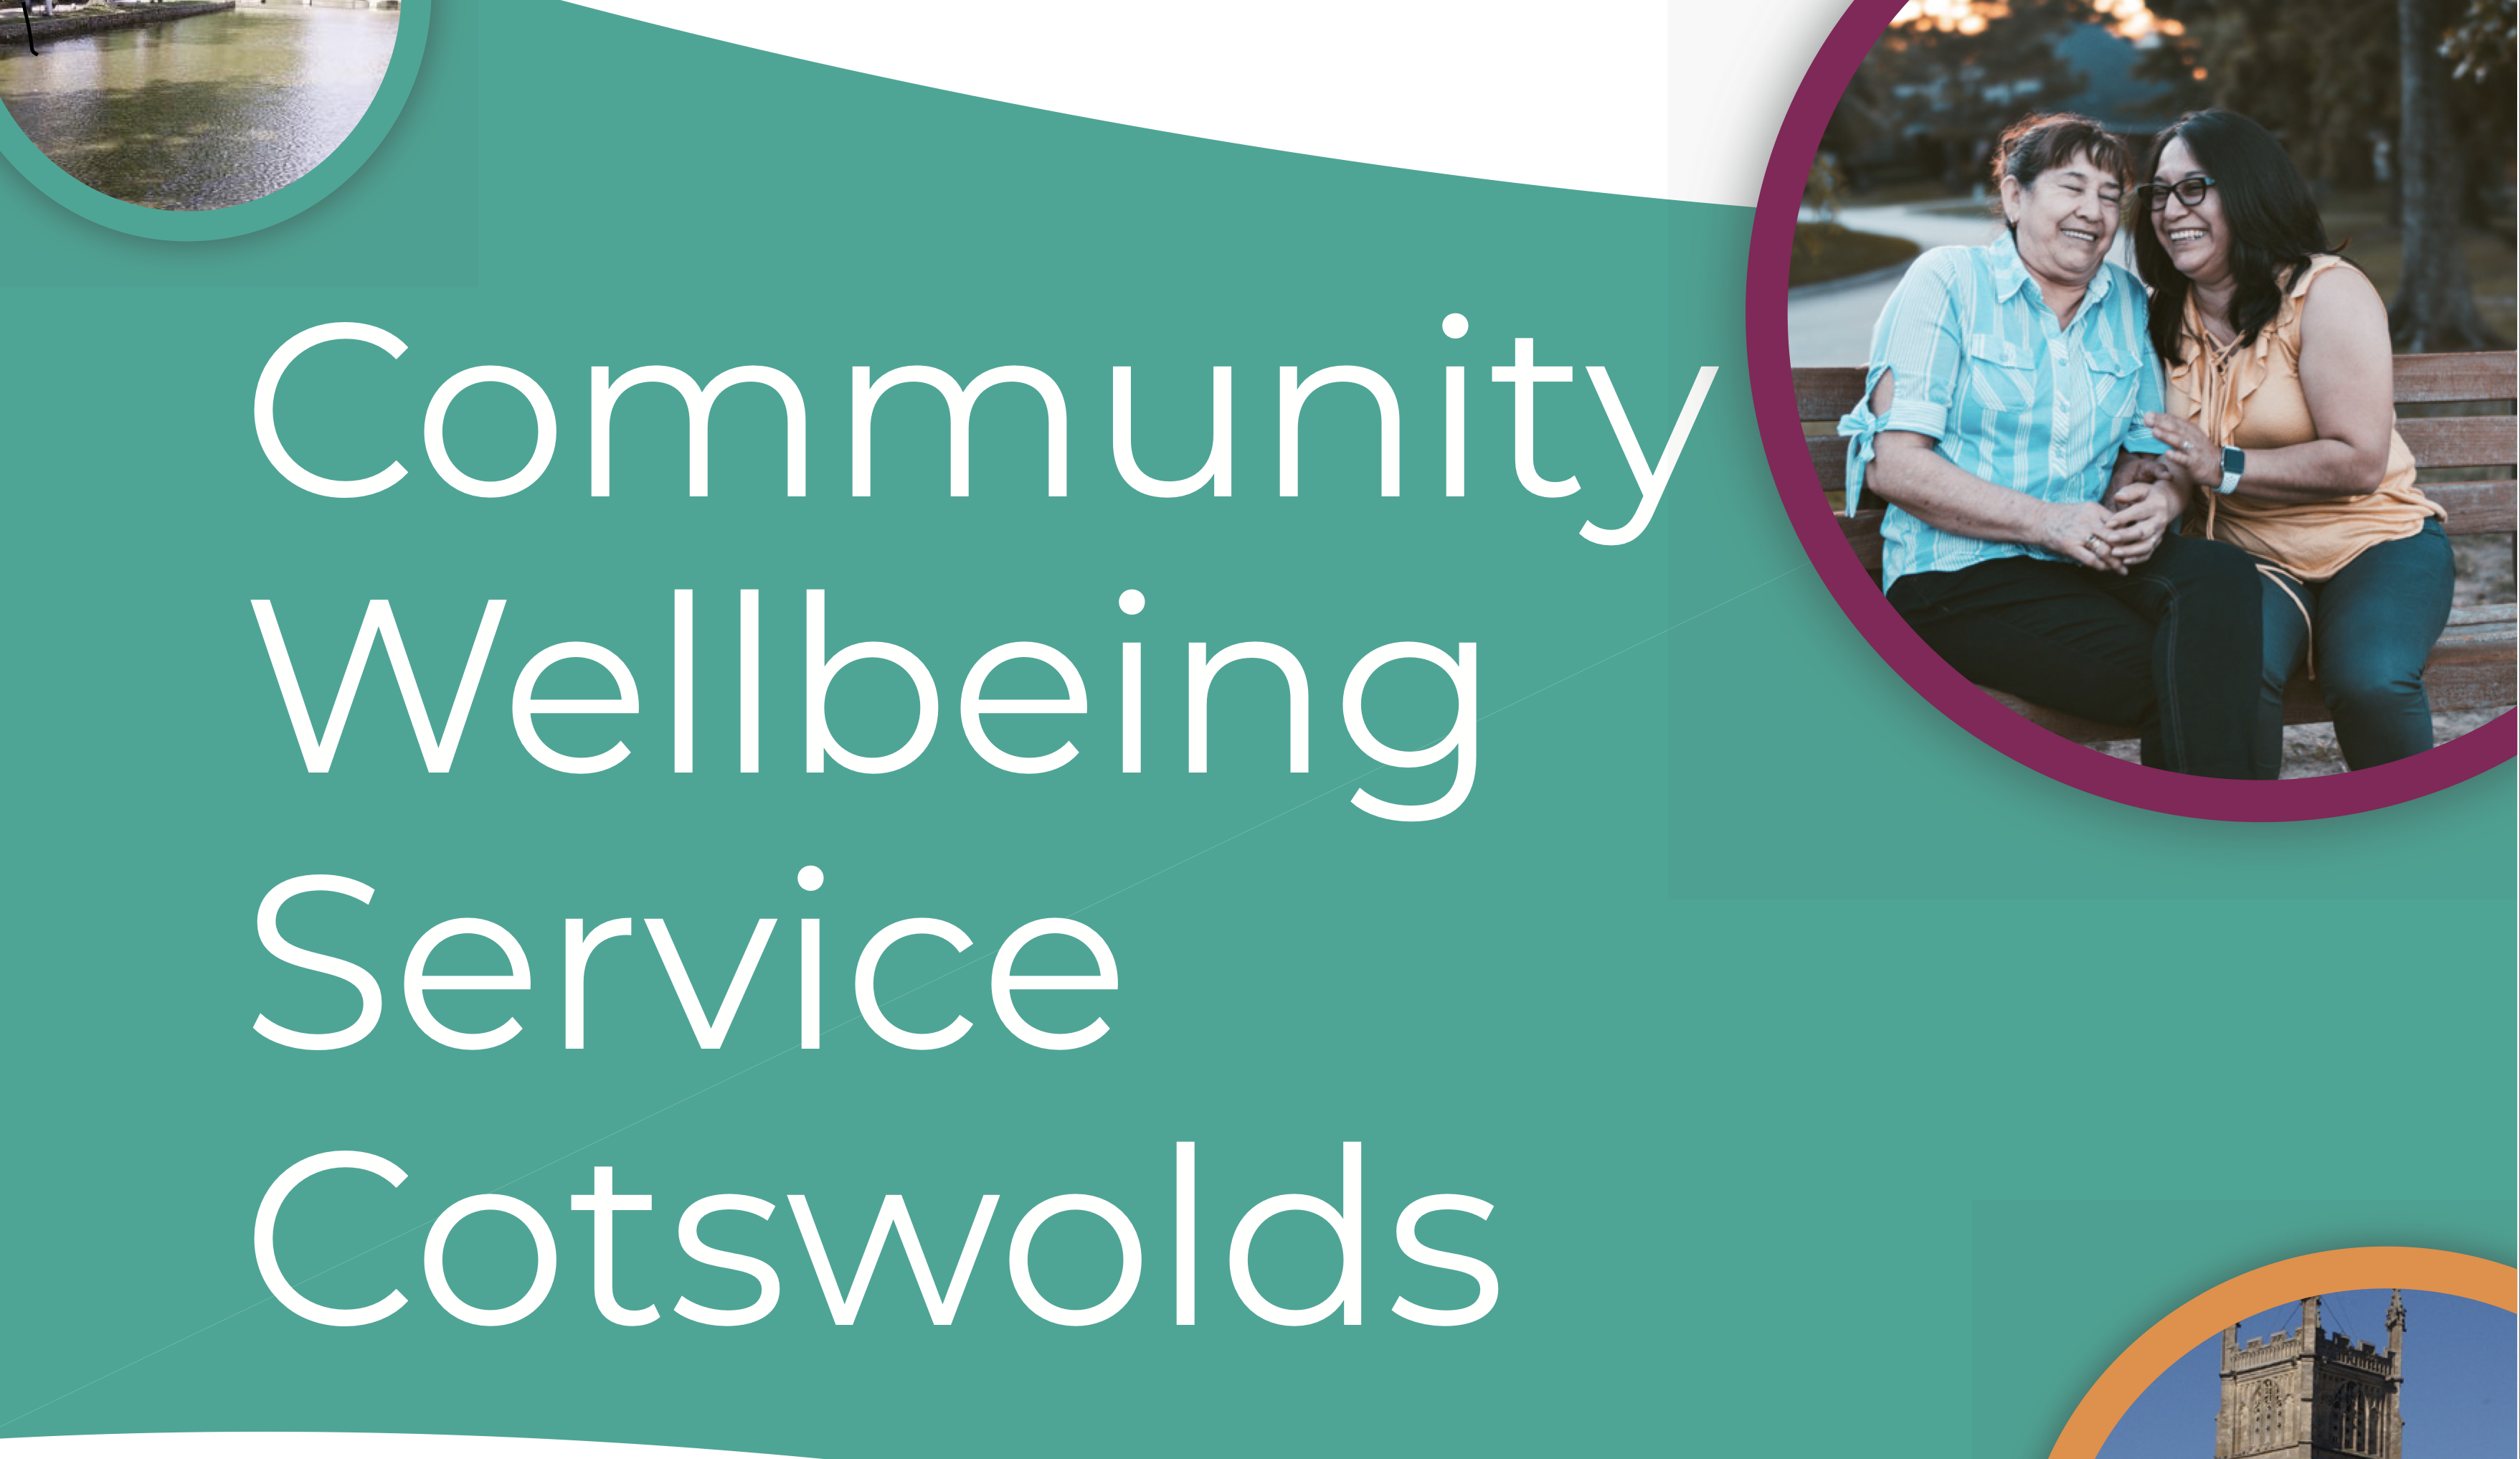 Wellbeing Service Leaflet – Covid-19